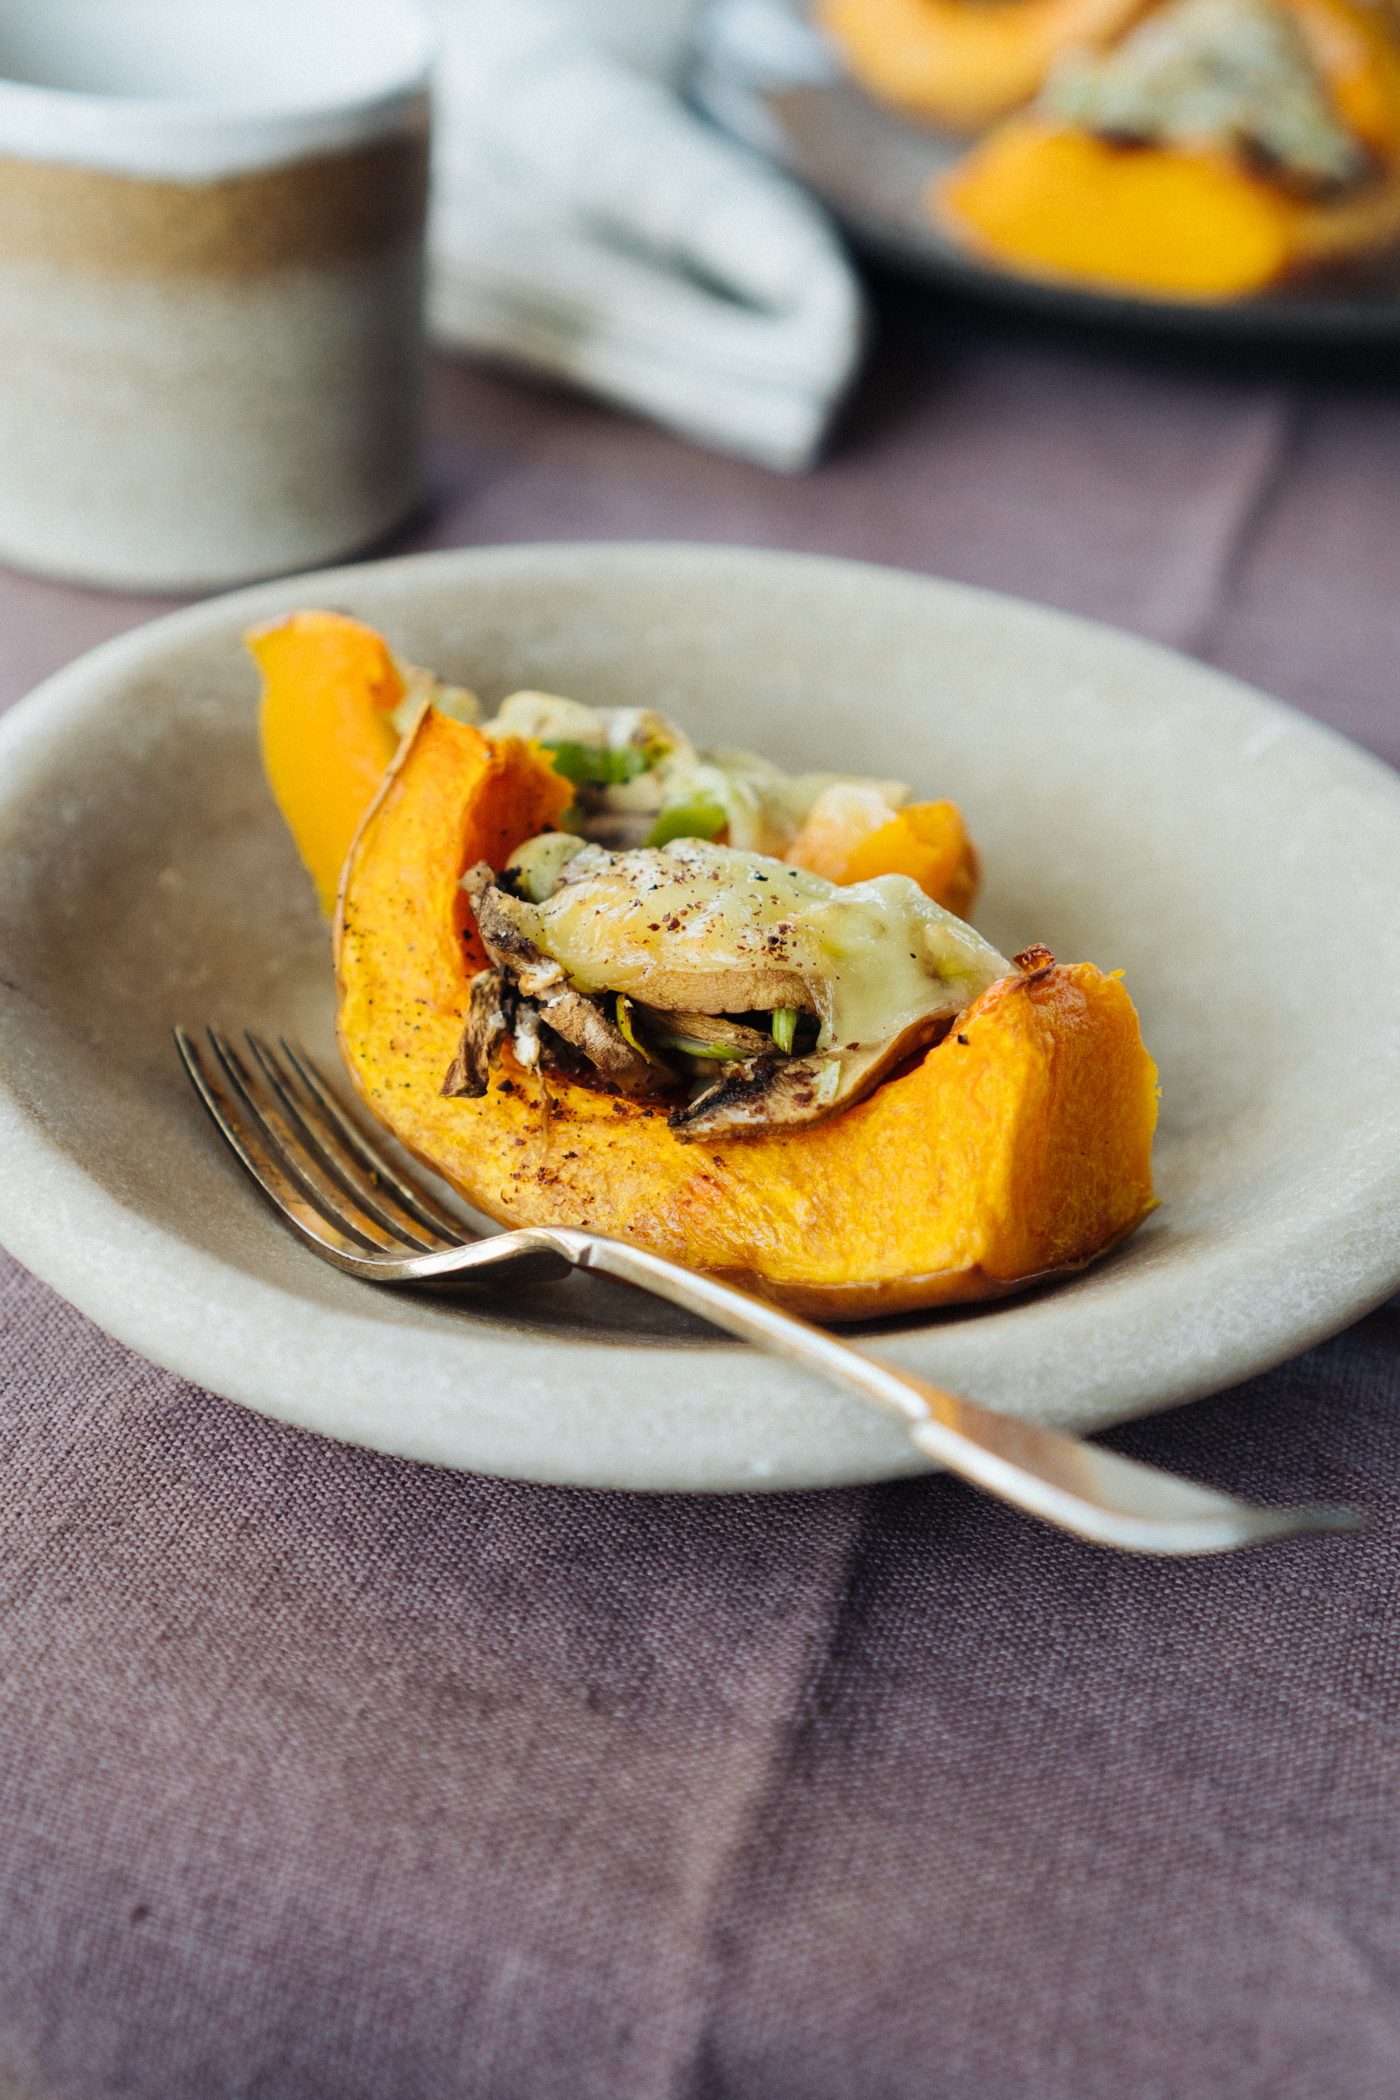 roasted_butternut_squash_with_mushrooms_and_cheese-9.jpg